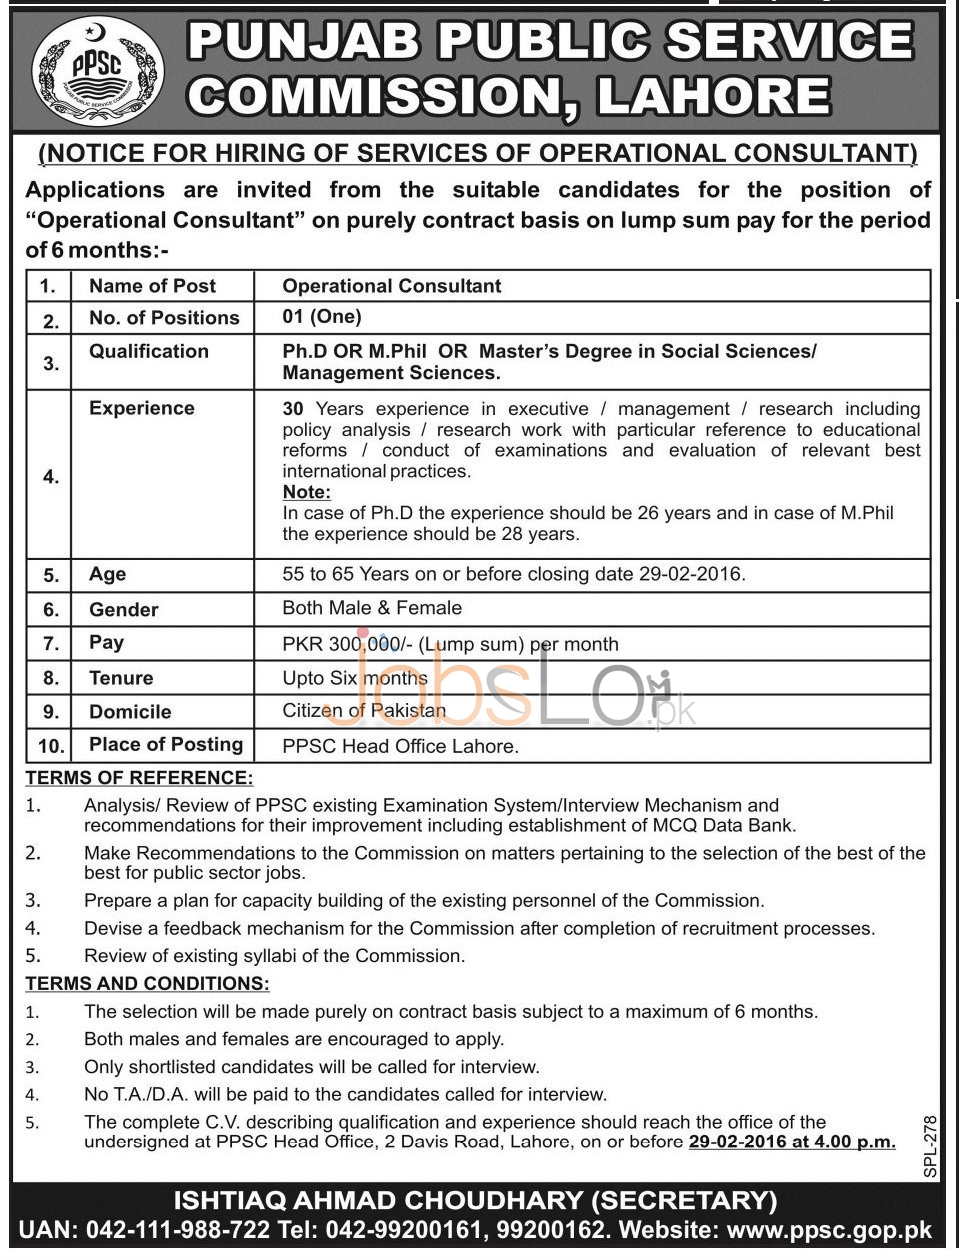 Situations Vacant in Punjab Publlic Service Commission Lahore 2016 For Operation Consultant